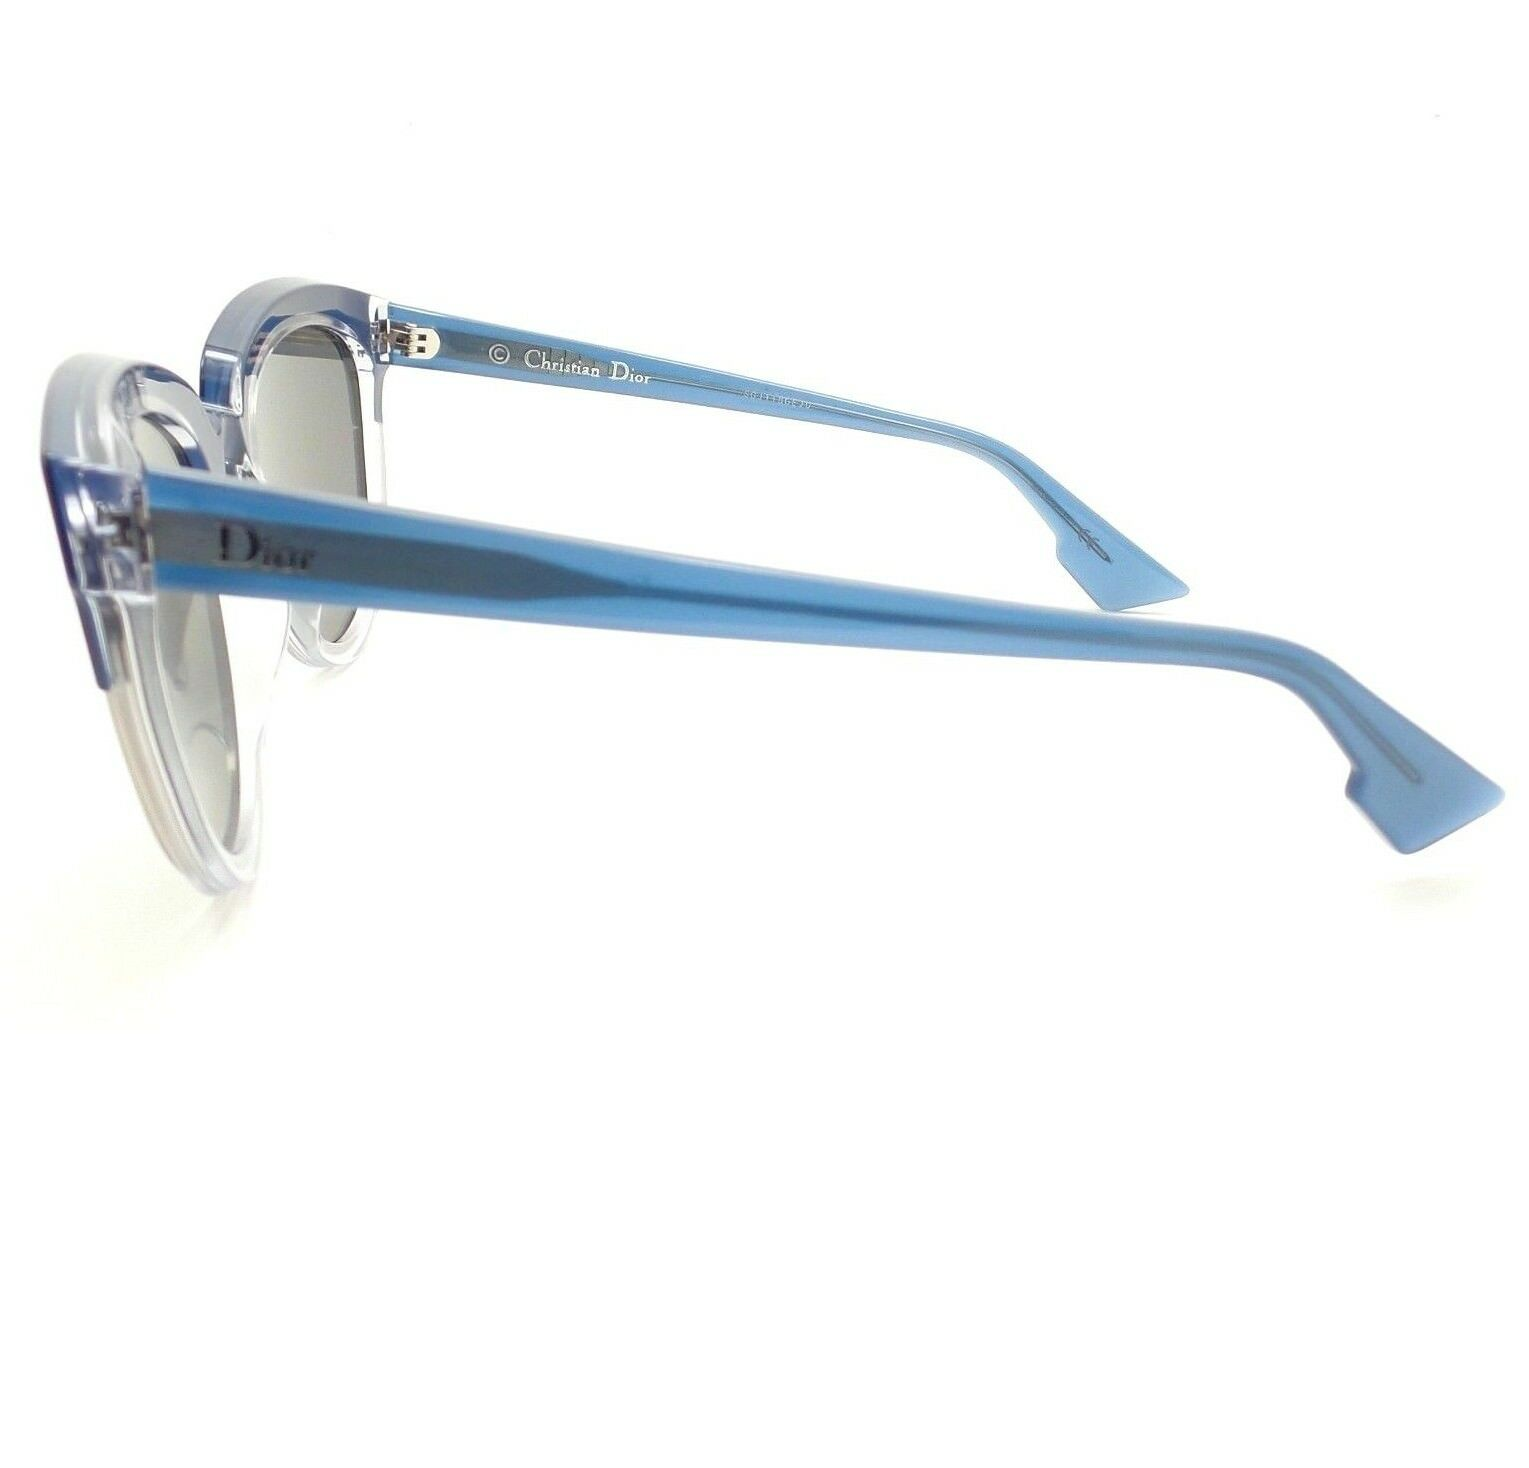 eed2a27768e04 Christian Dior Sight 1 Rent7 Blue Crystal Blue Mirror Sunglasses Authentic  for sale online